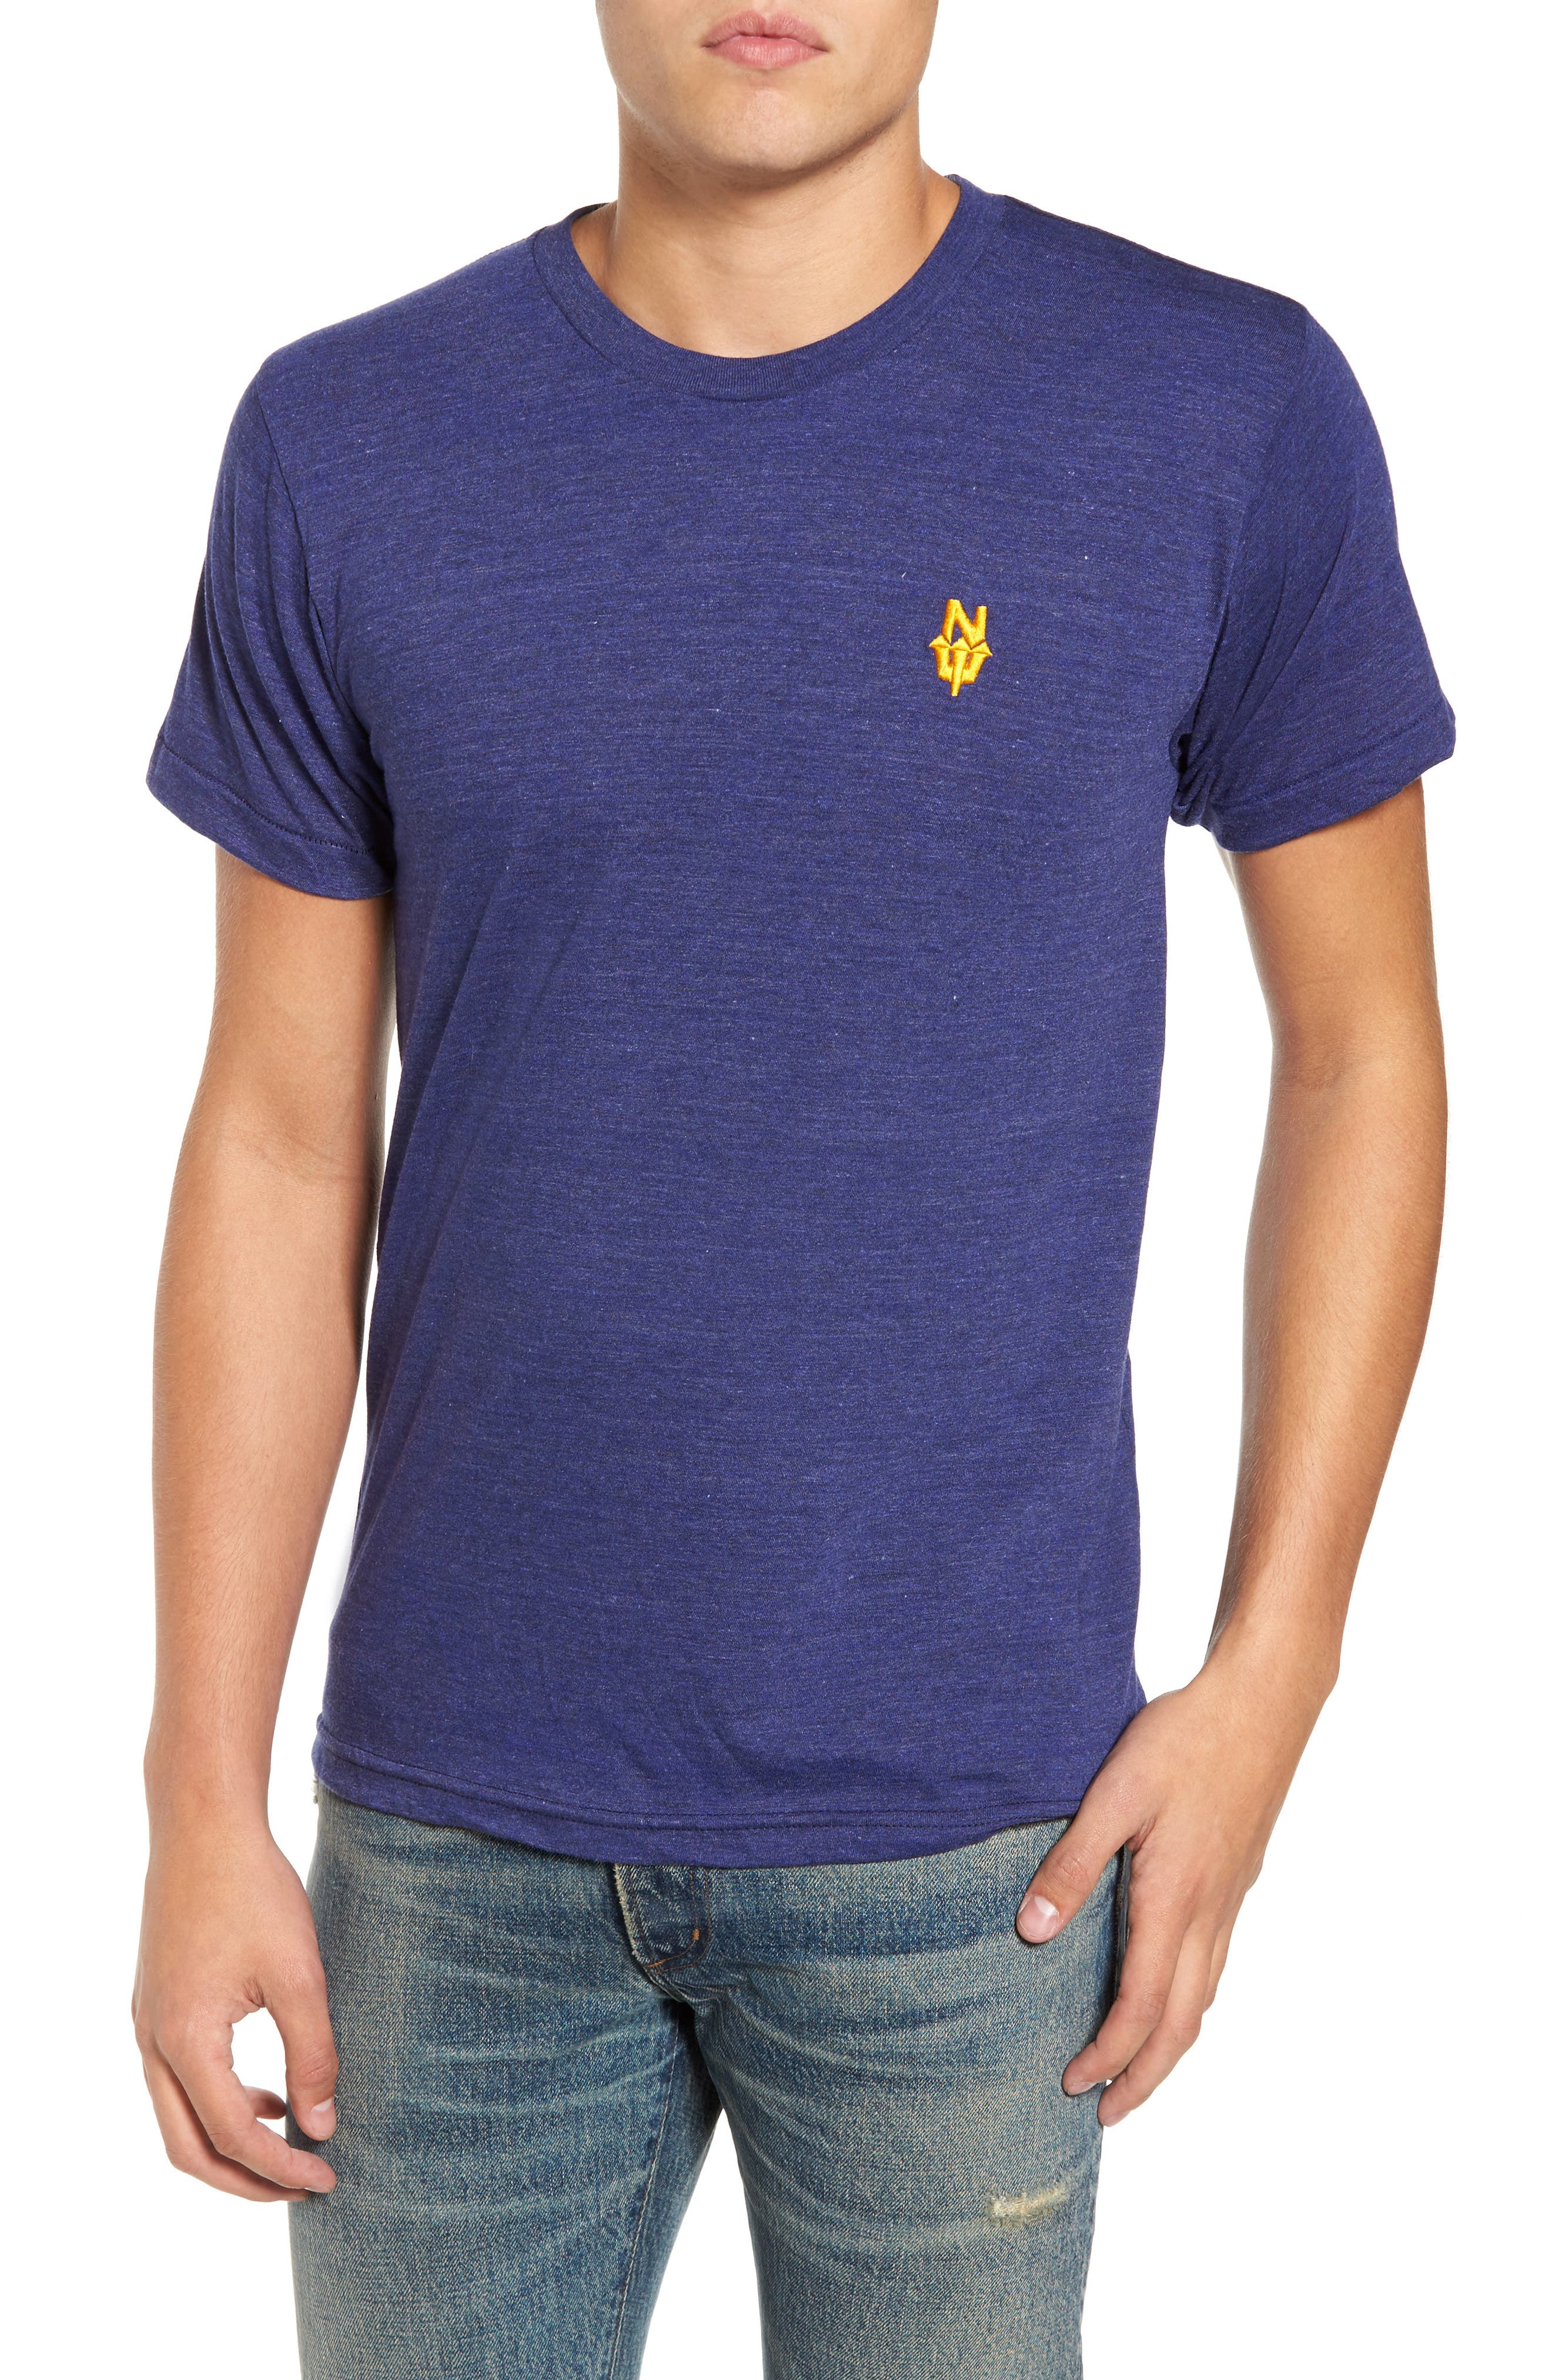 Alternate Image 1 Selected - Casual Industrees NW Trident Embroidered T-Shirt